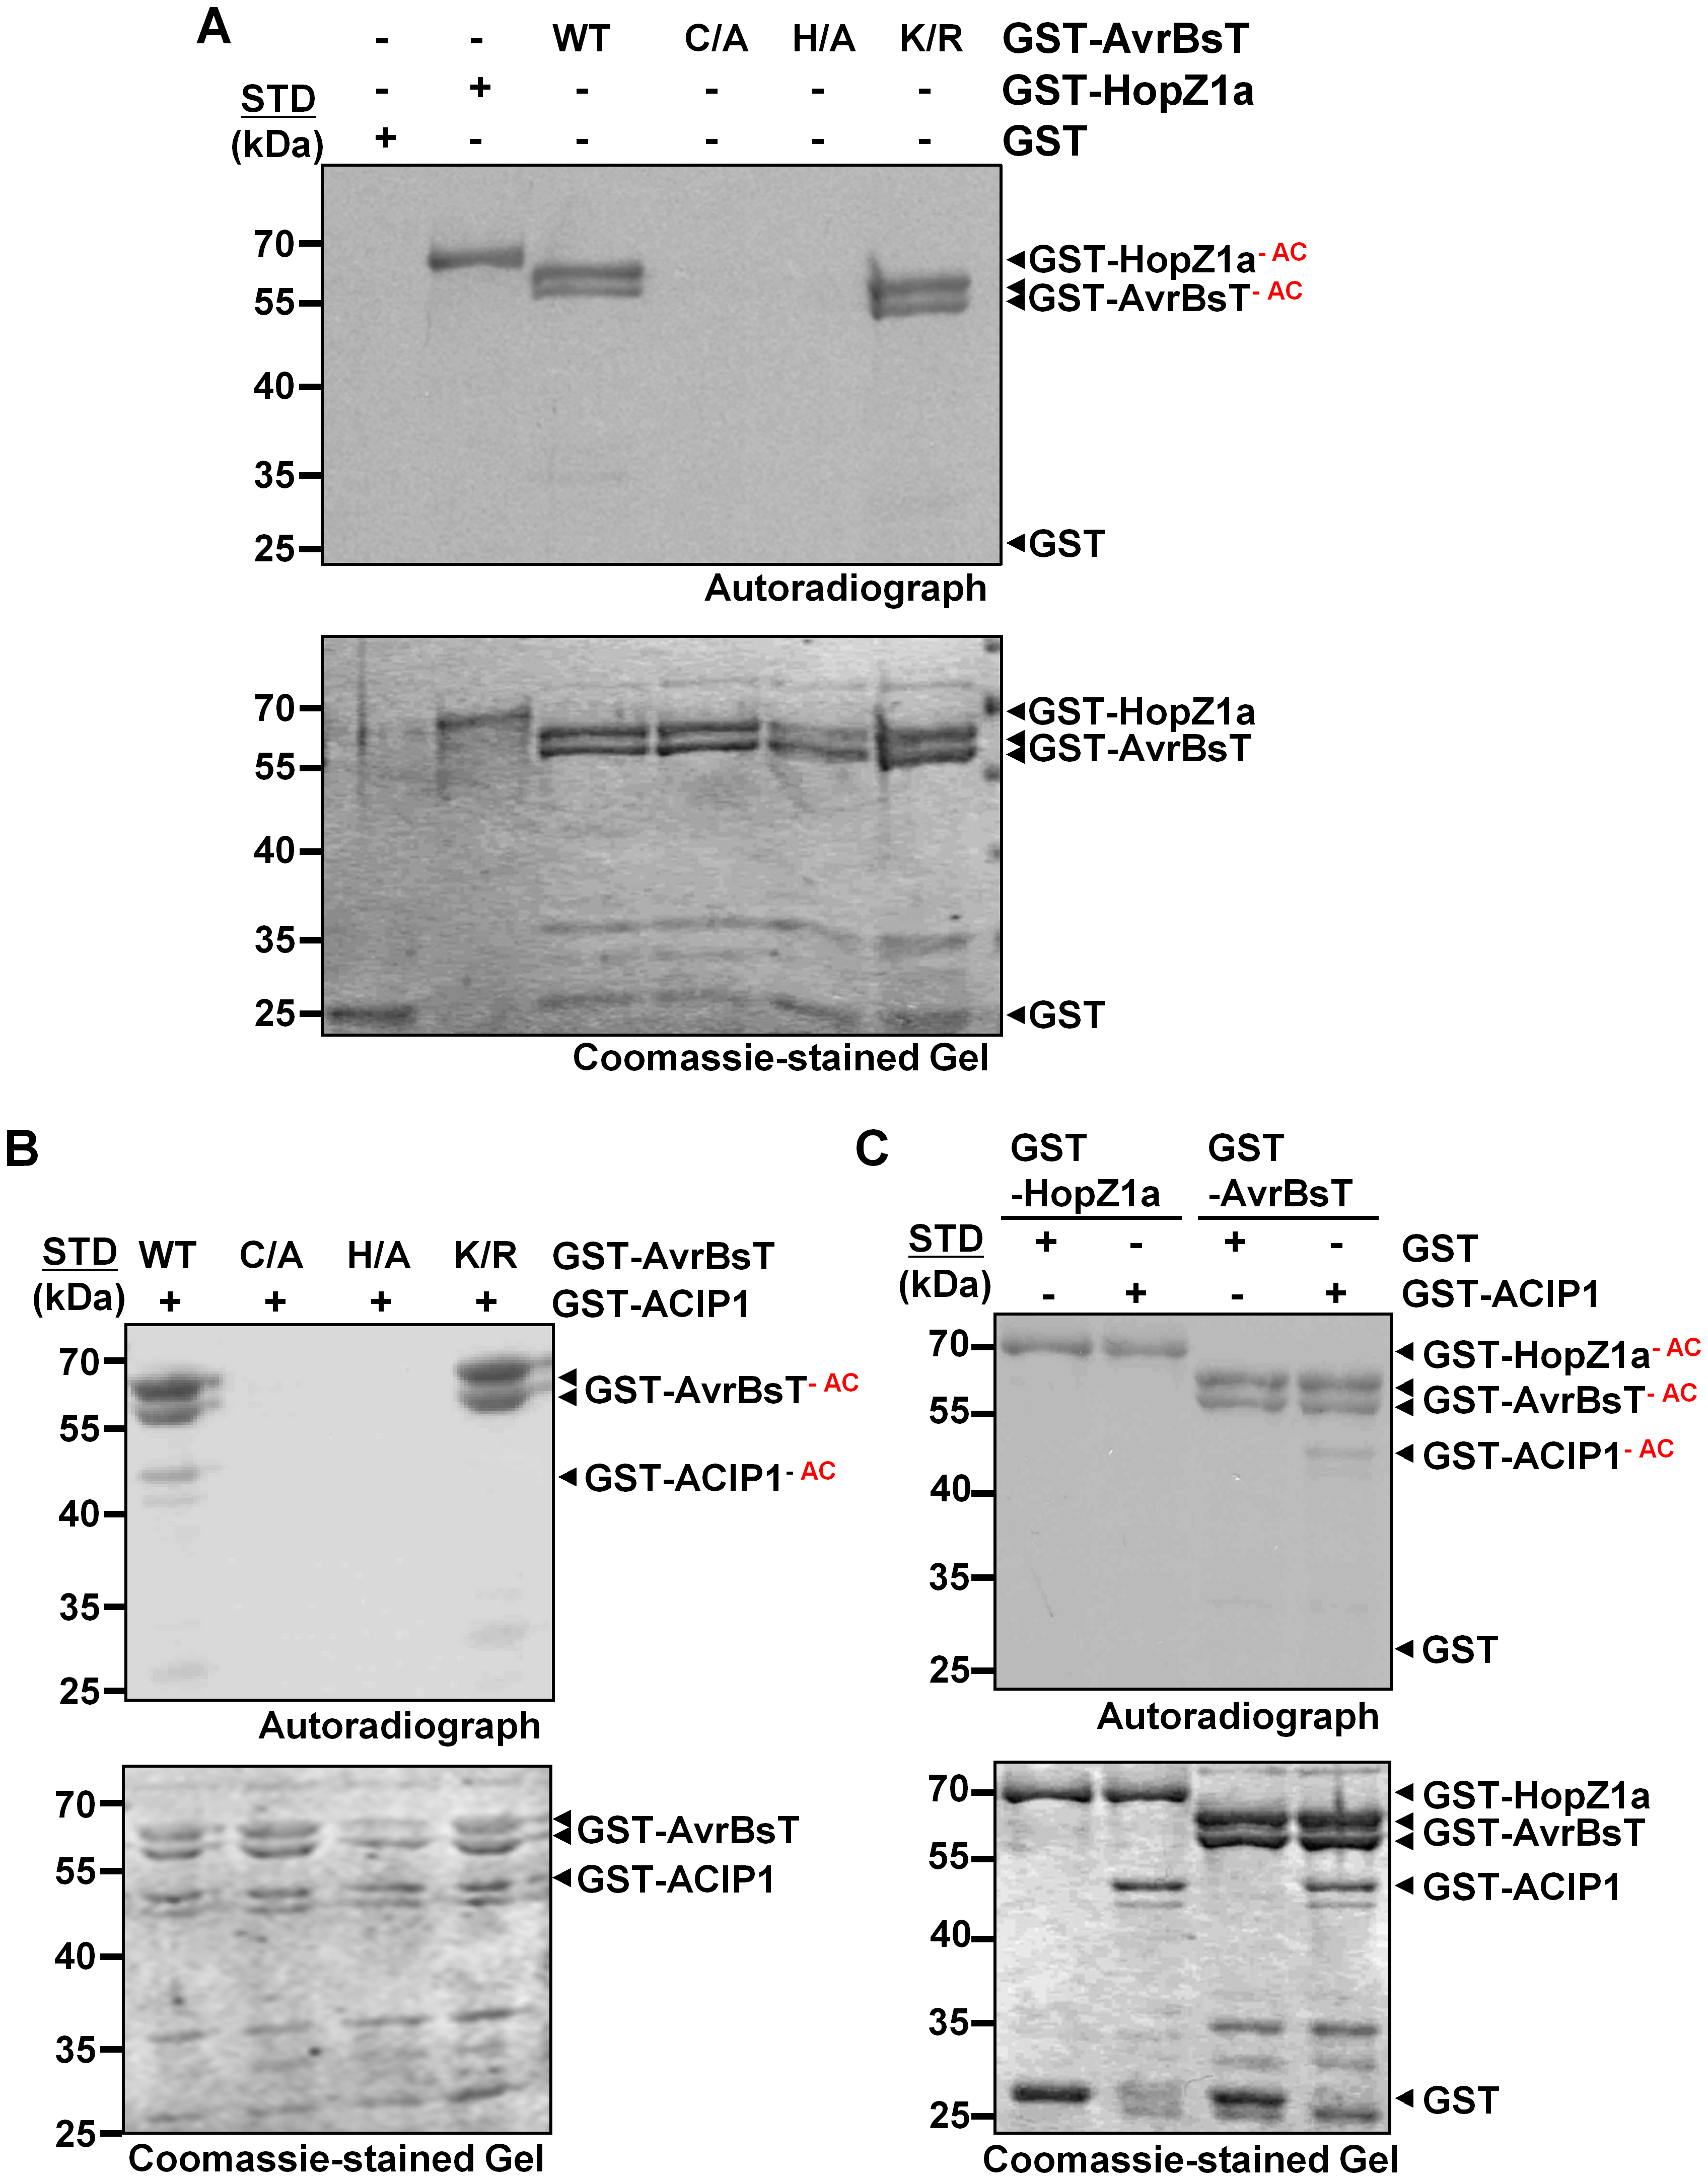 AvrBsT is an acetyltransferase that specifically acetylates ACIP1.